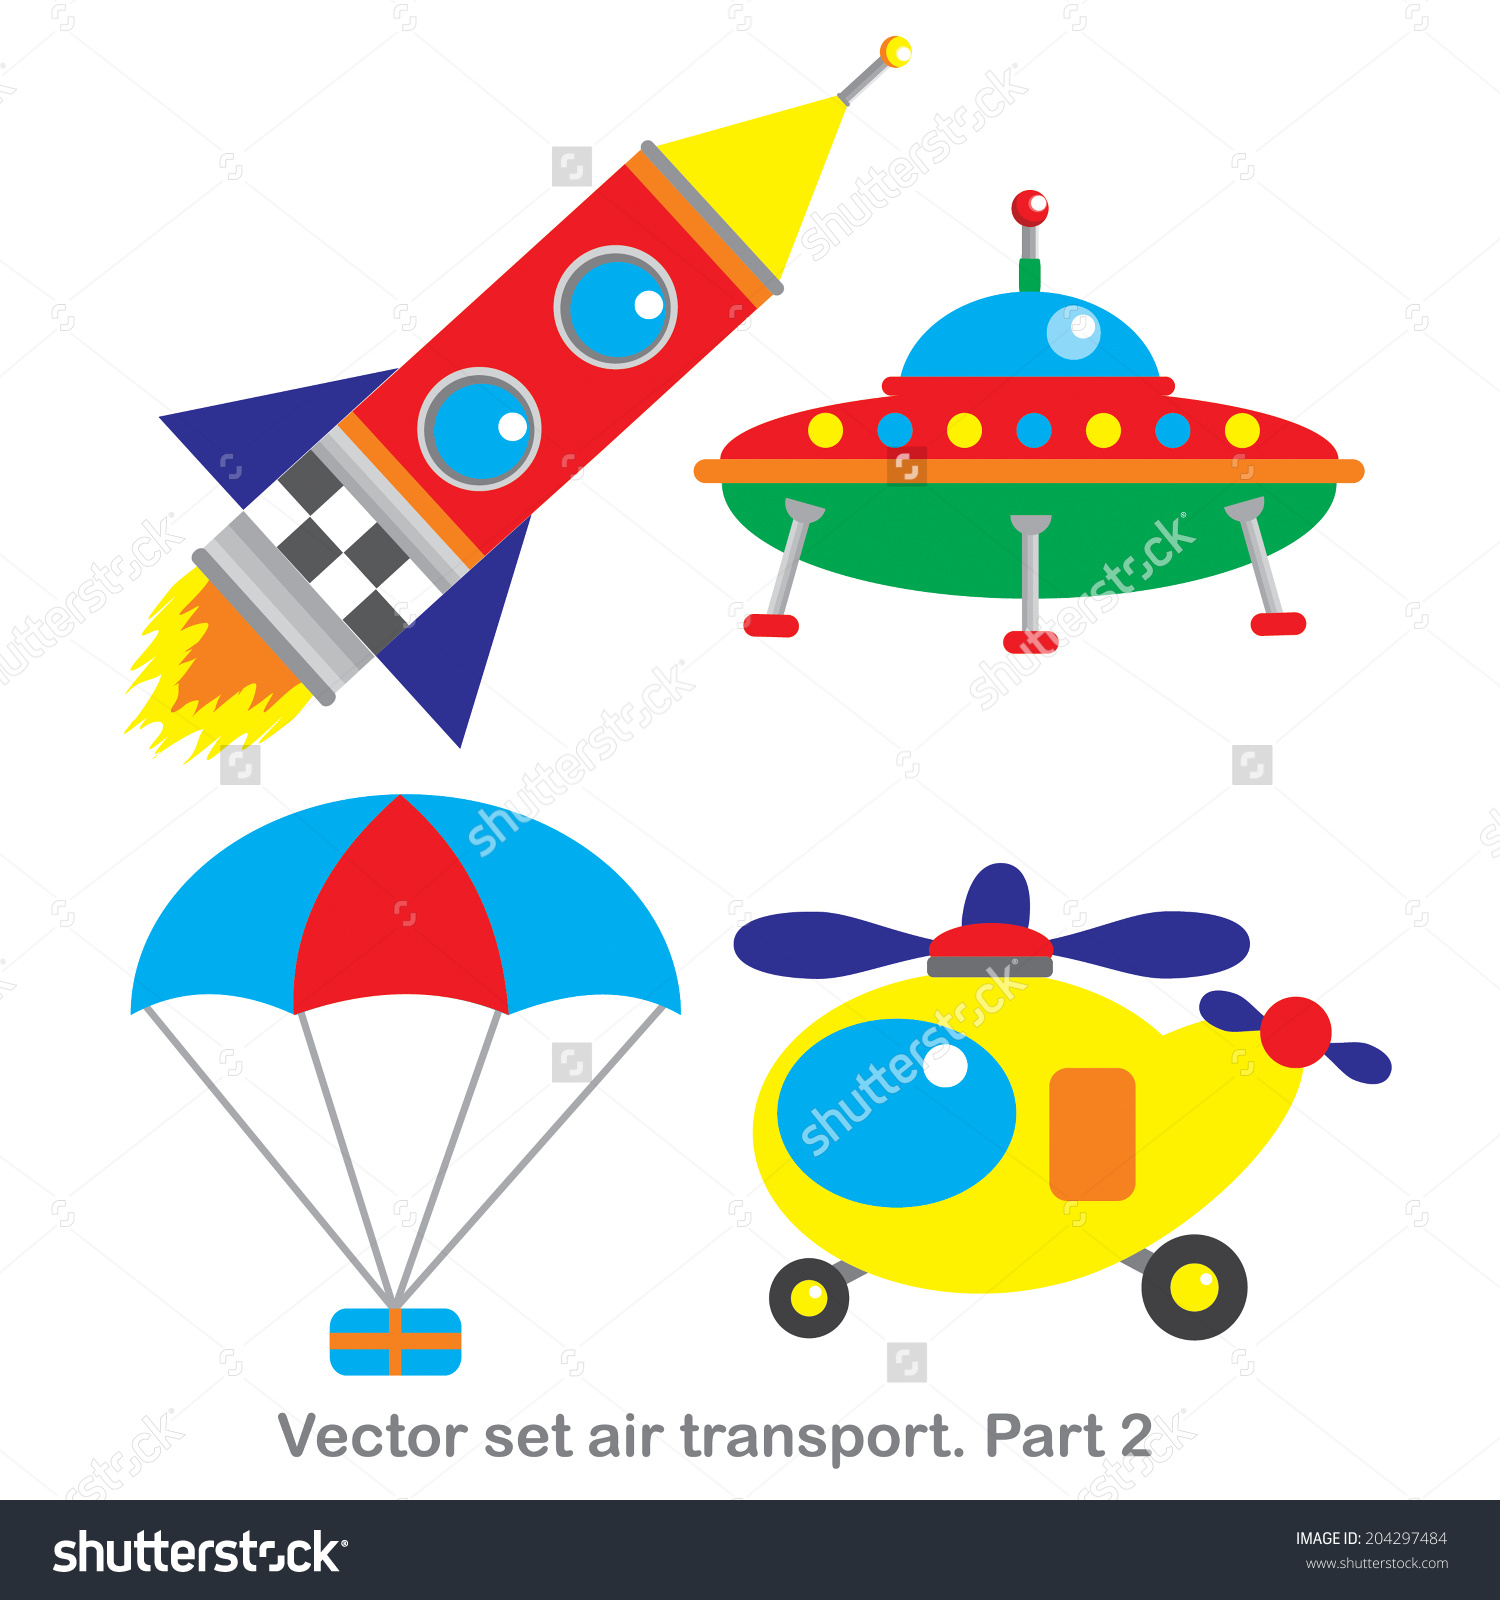 Vector Clip Art Set Air Transportpart Stock Vector 204297484.